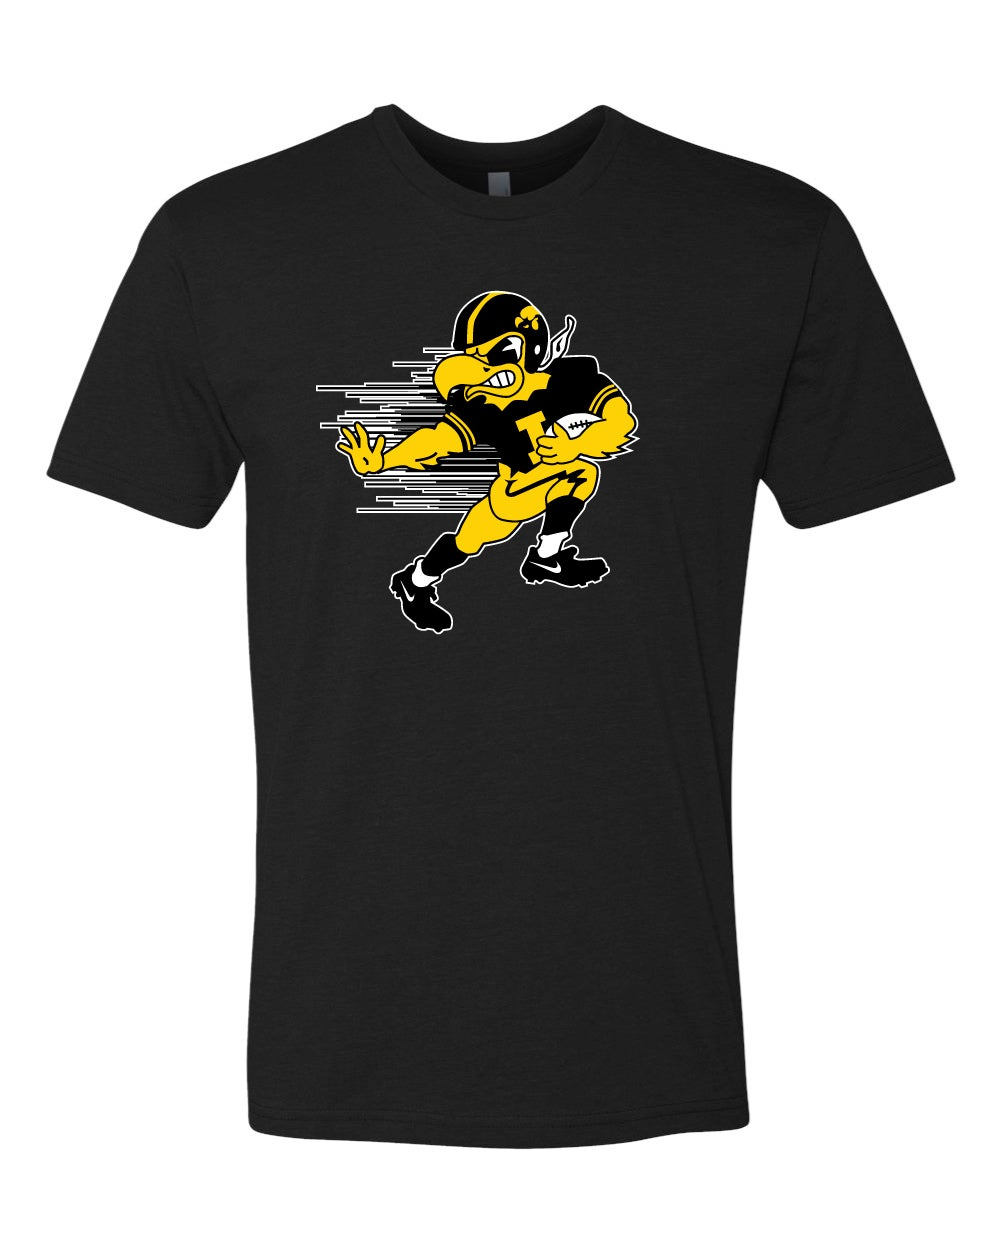 Image of Herk, How's Business? It's Zoomin'. (T-Shirt)